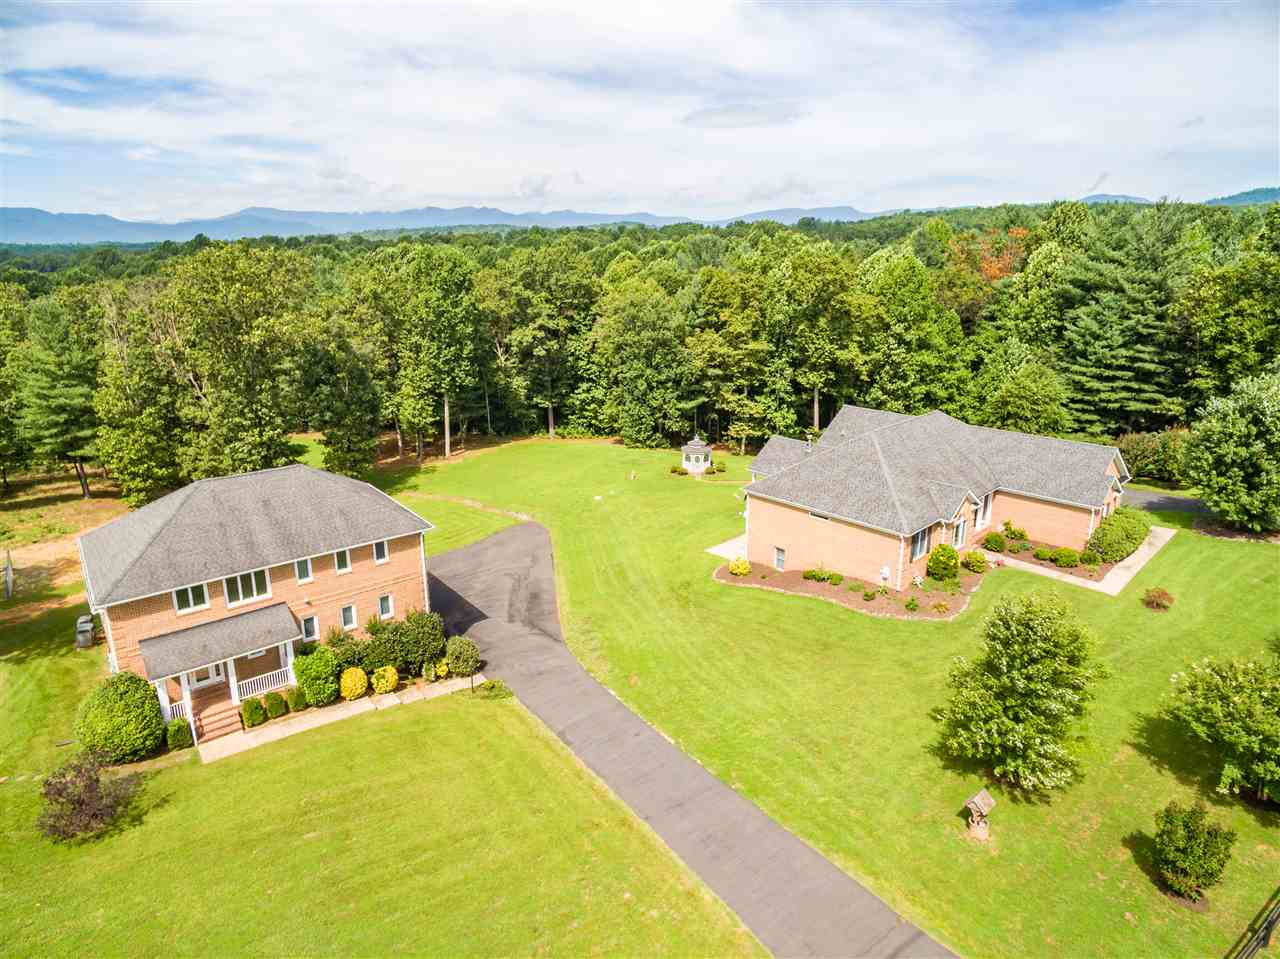 109 Arrington Mountain Rd, Haywood